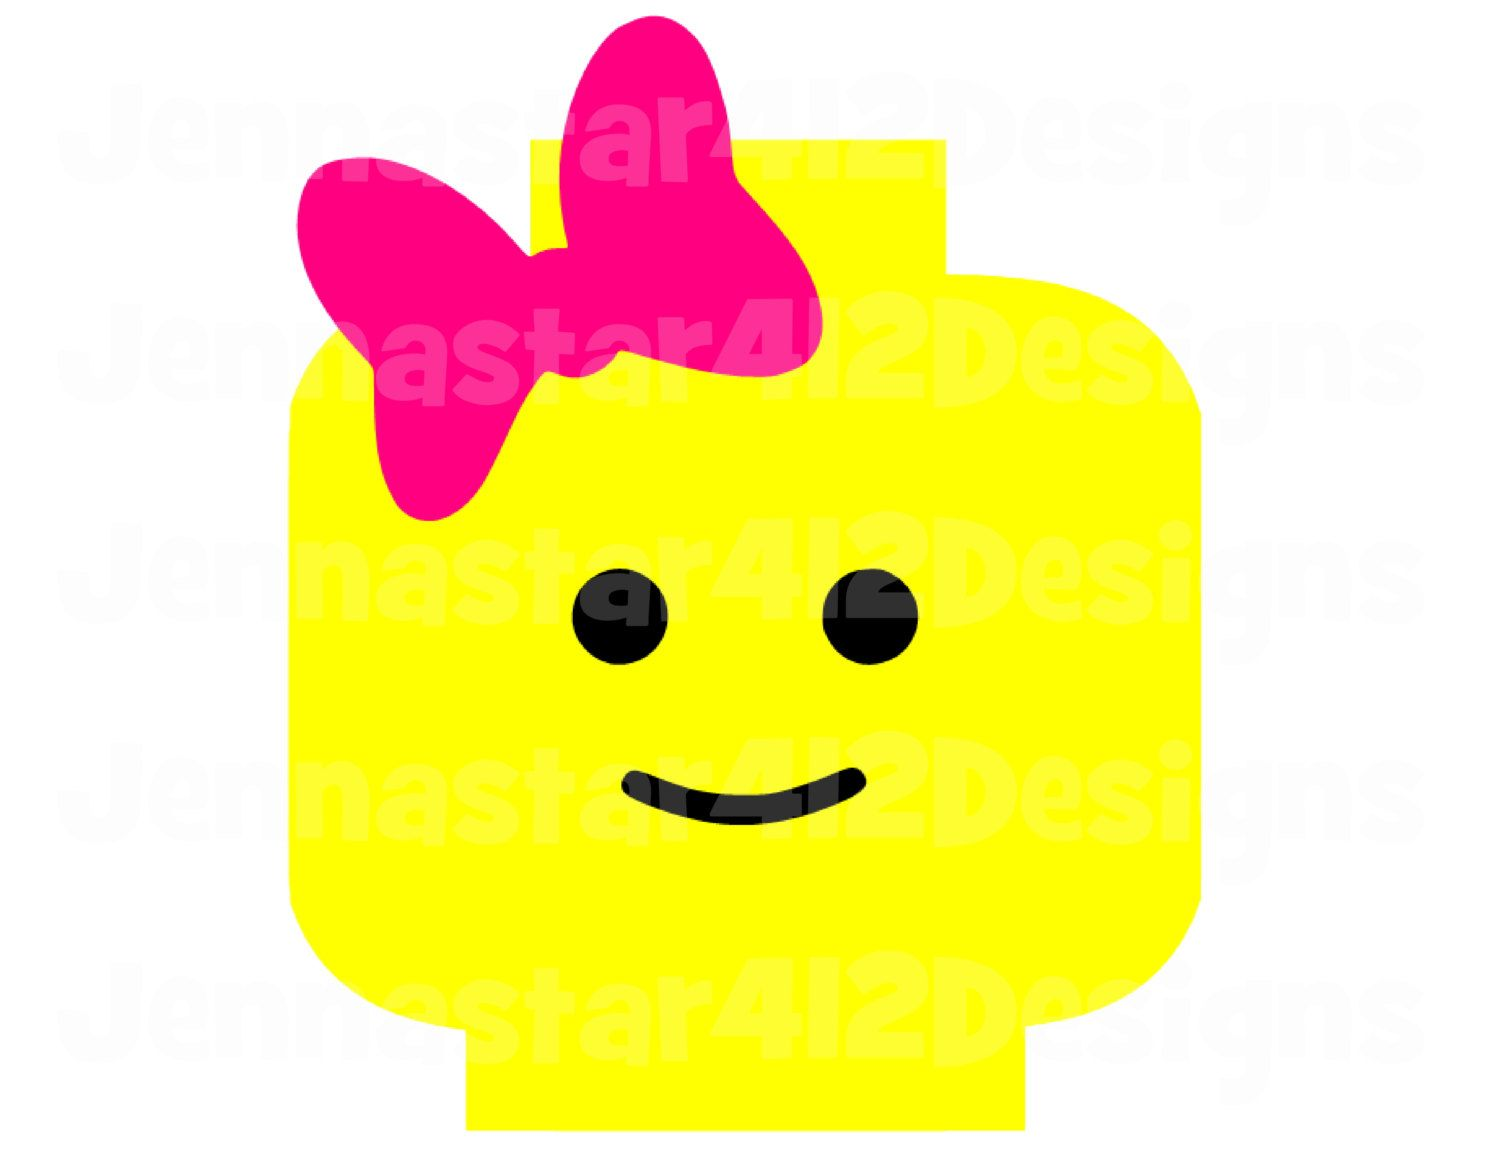 image about Lego Faces Printable identify Lego Mind Vector at  Free of charge for unique retain the services of